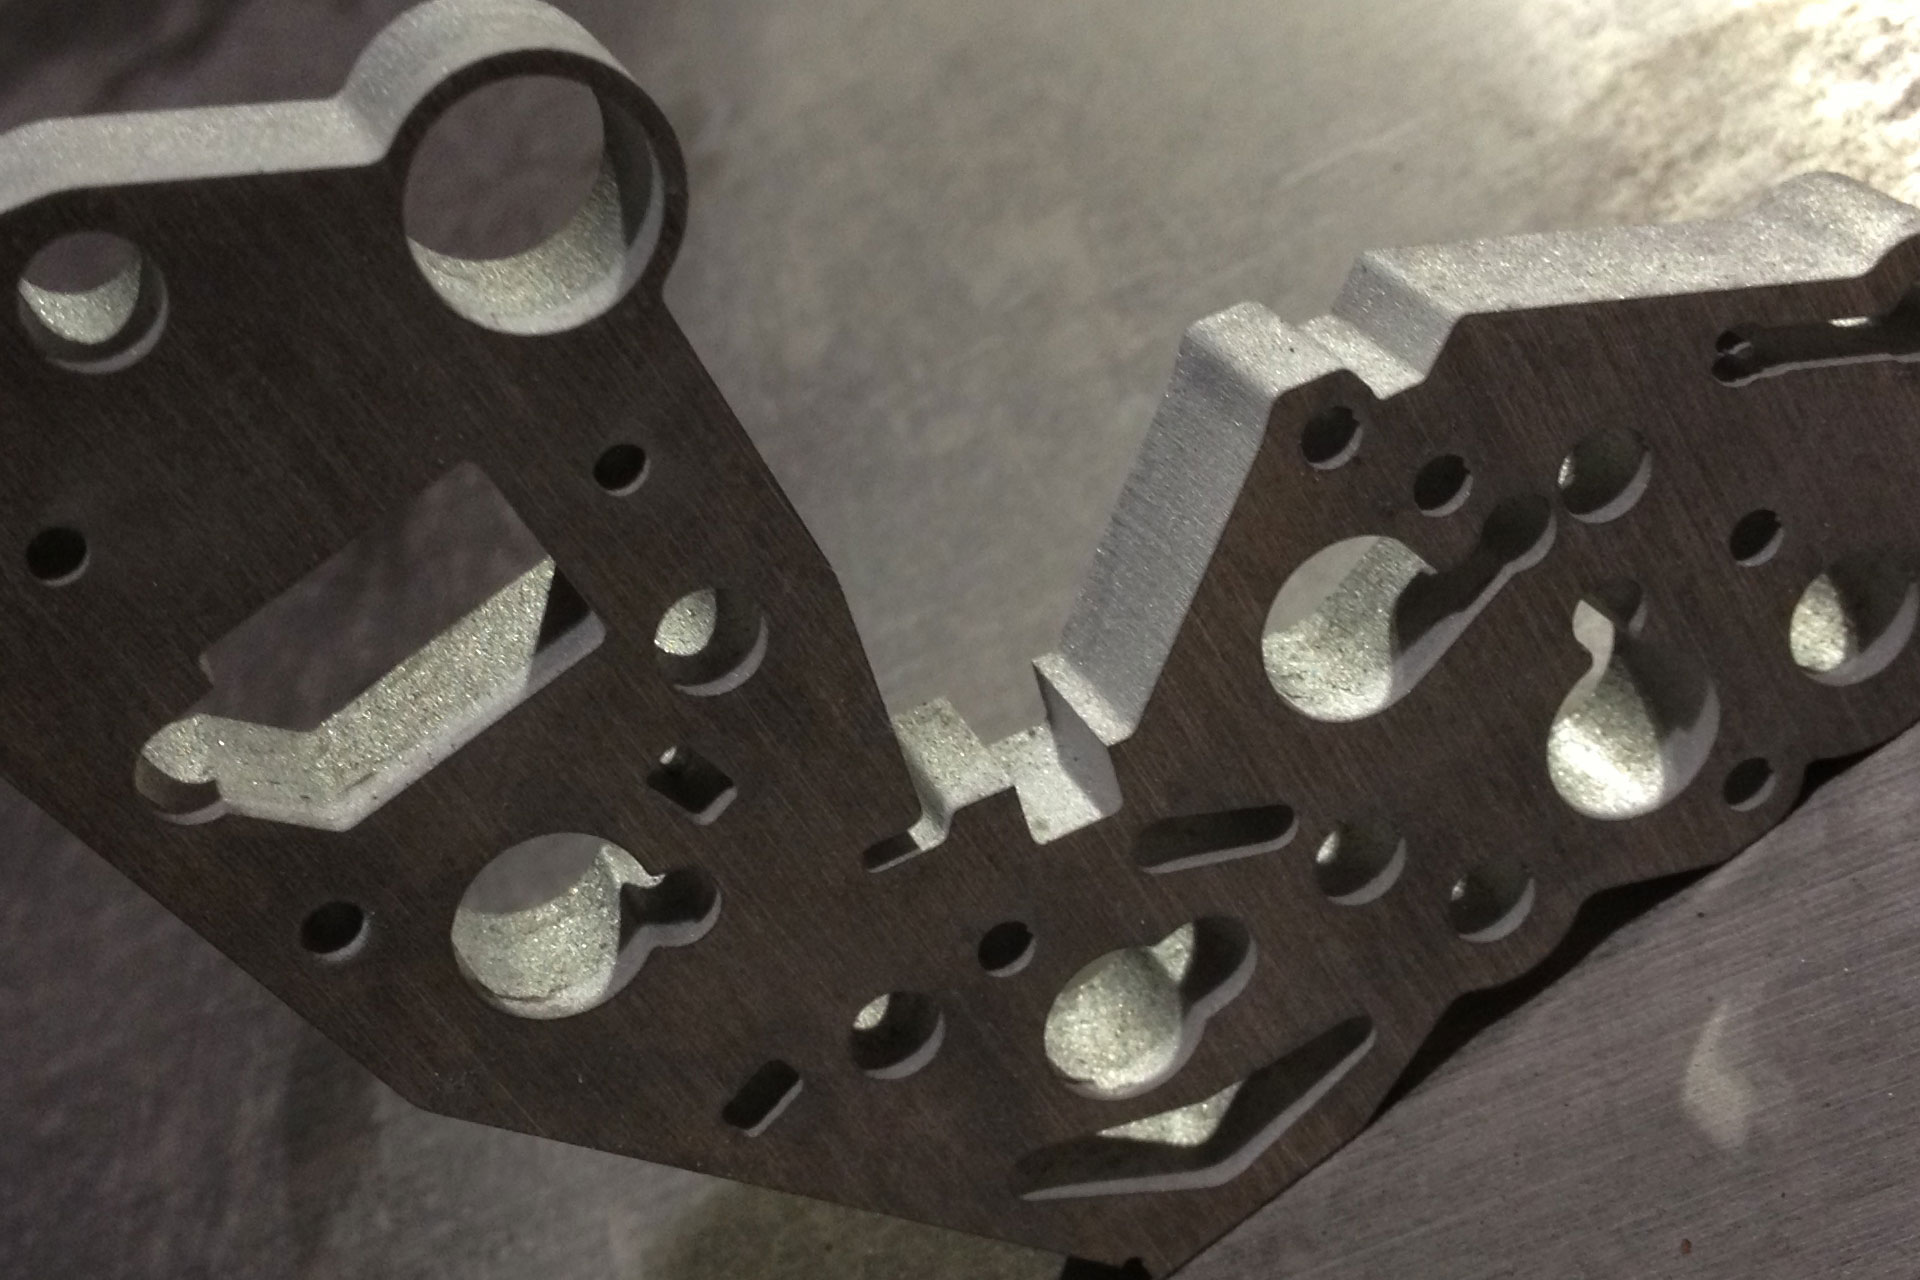 WHAT-ARE-YOU-CUTTING-METAL-PART-IMAGE